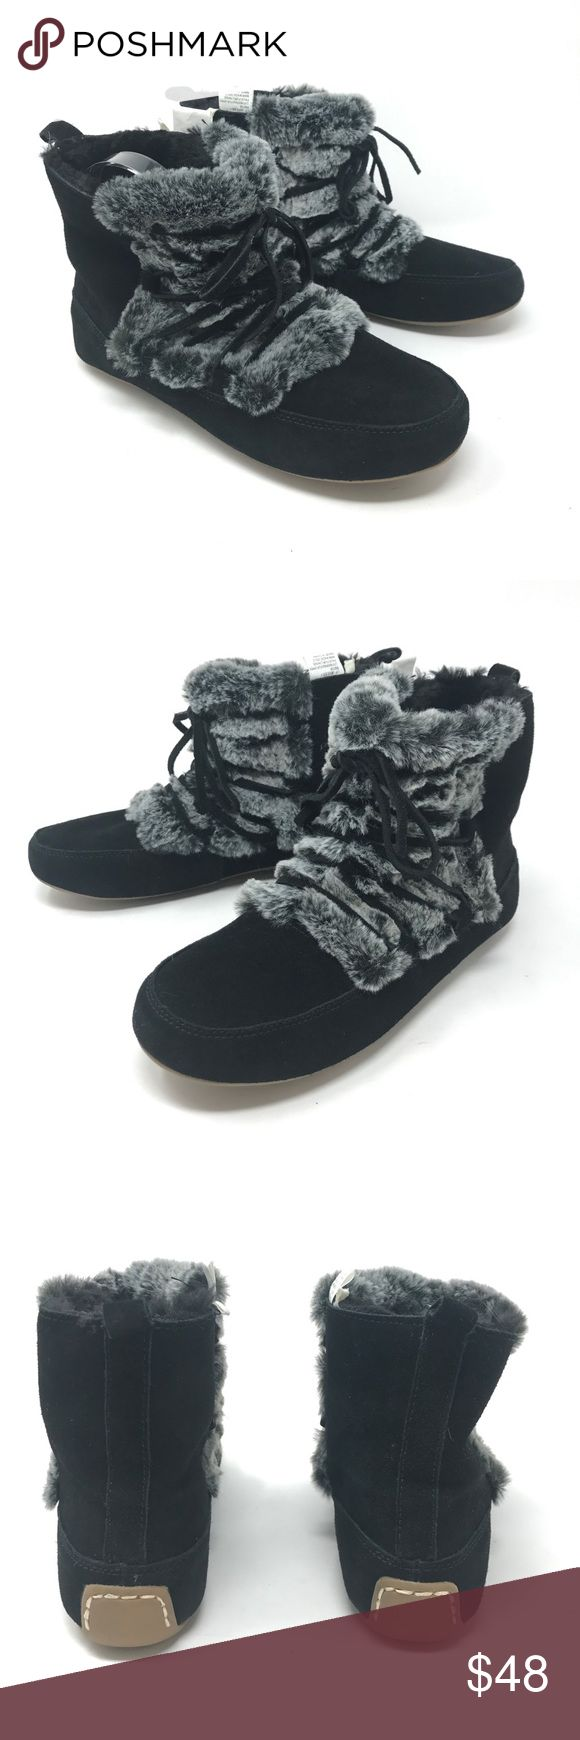 Lucky Brand Aresey Faux Fur Moccasin Boots Sz 8 Lucky Brand Women's Sz 8 Aresey Faux Fur Lined Ankle Black Suede Shoes Boots NEW  Size:8 M Color: black Style Name/Number: Aresey  Brand New in unworn condition, missing original box. Lucky Brand Shoes Moccasins